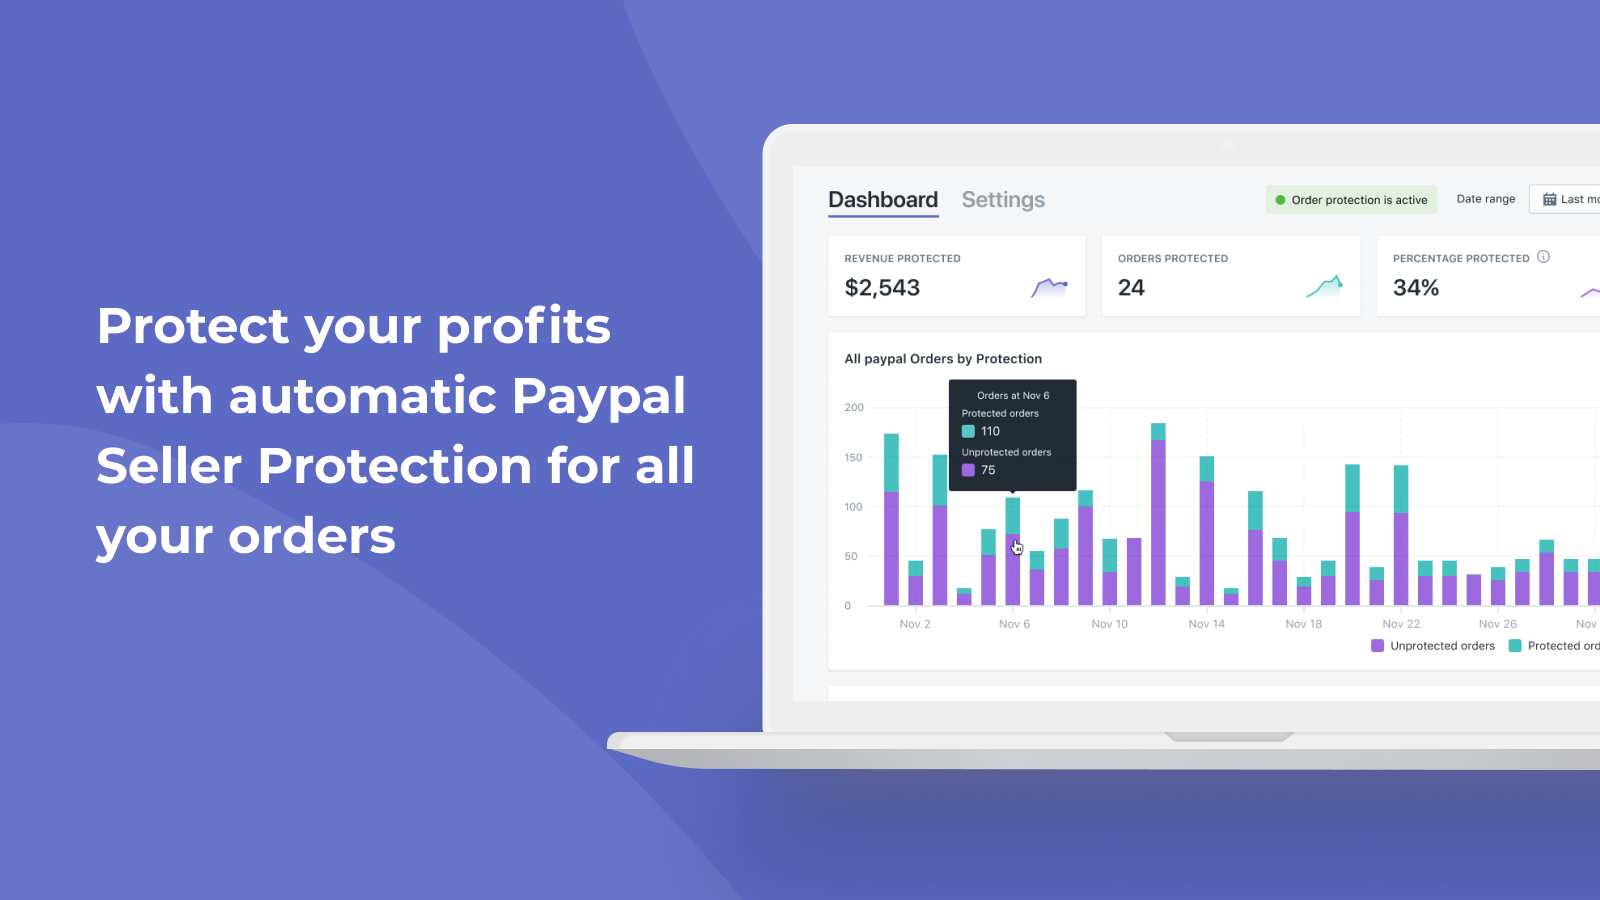 Protect your profits with automatic PayPal Seller Protection